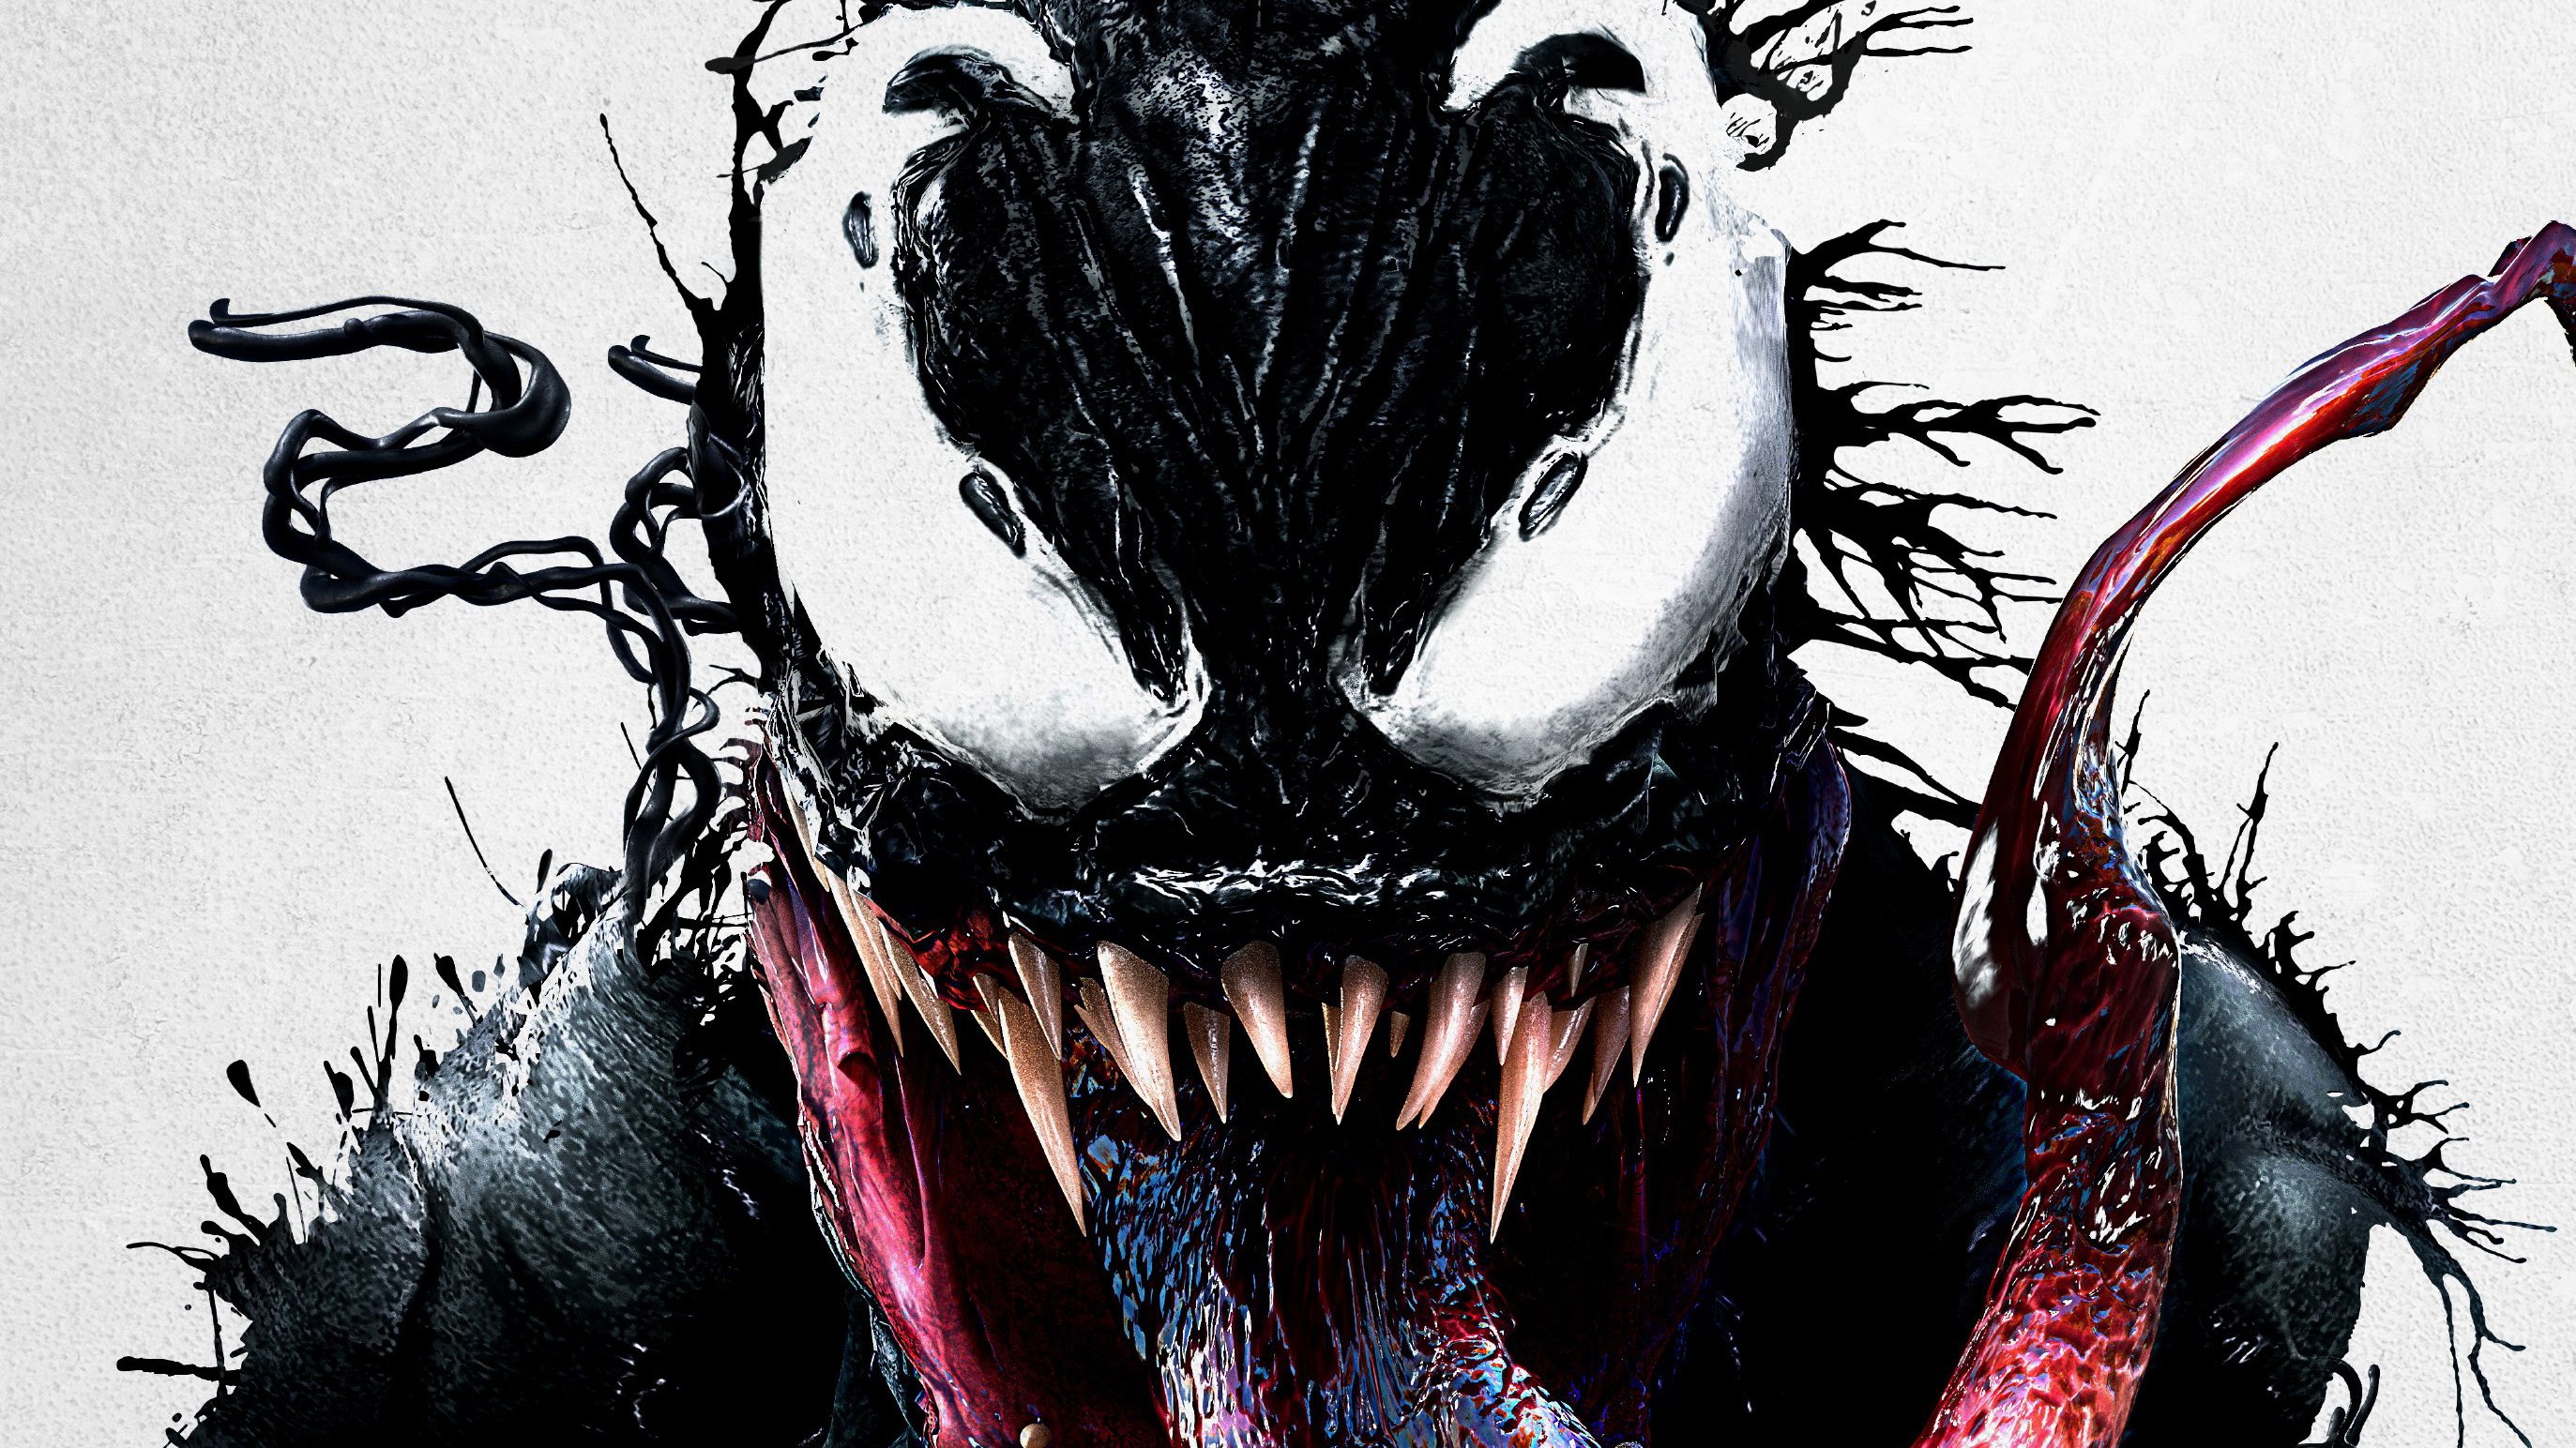 Venom Wallpapers Pictures Images: Venom Movie Imax Poster, HD Movies, 4k Wallpapers, Images